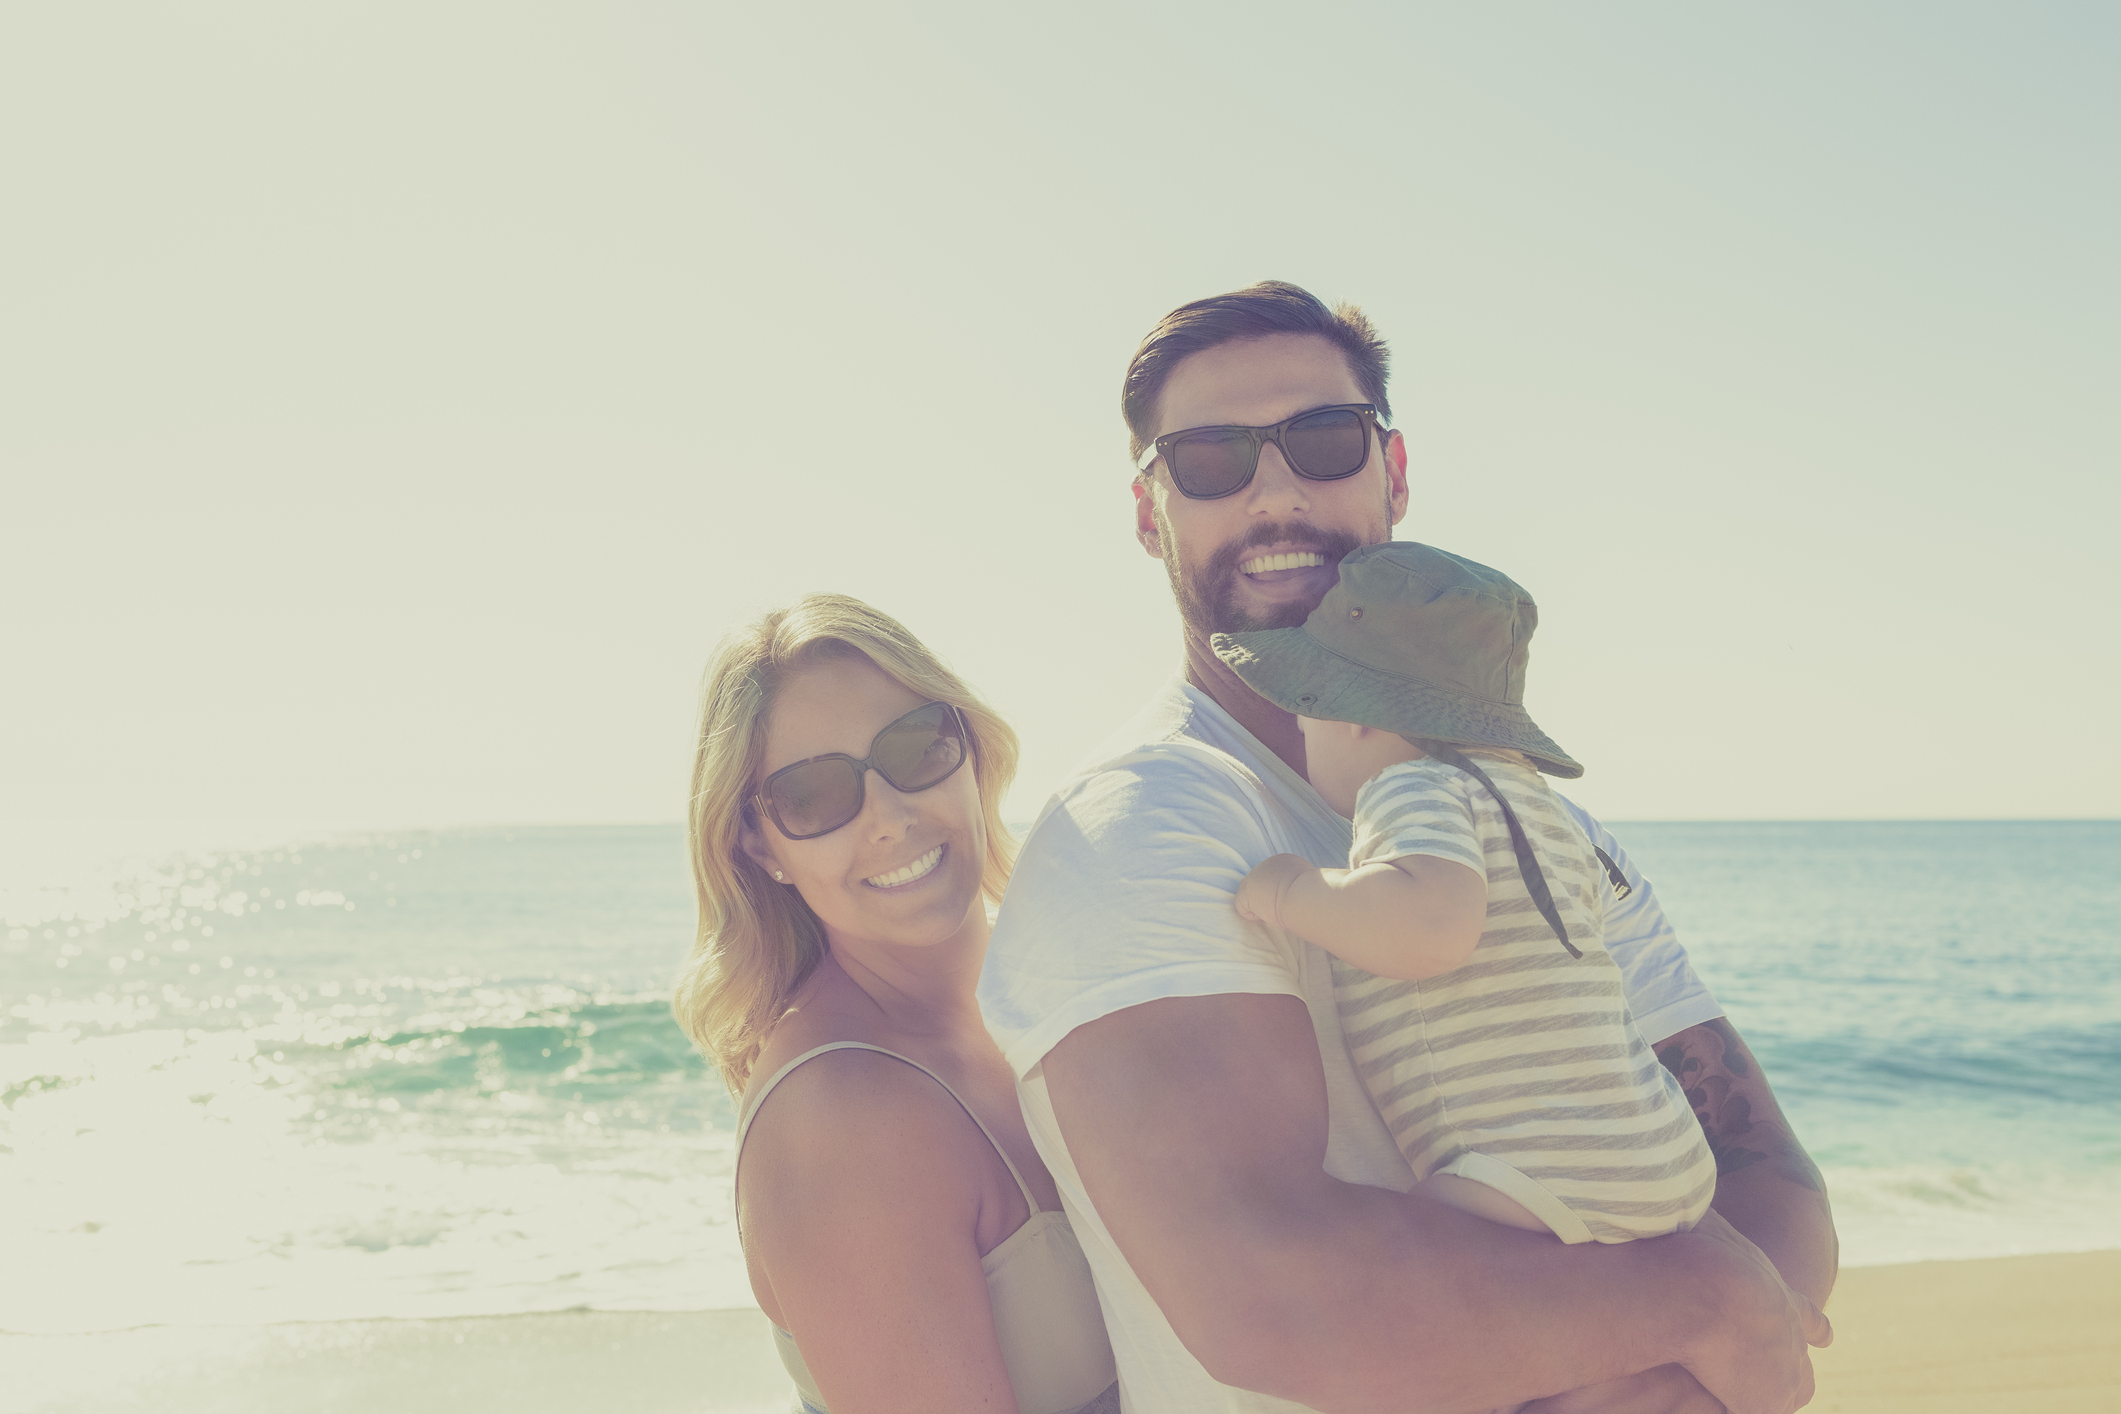 15 benefits of being an only child